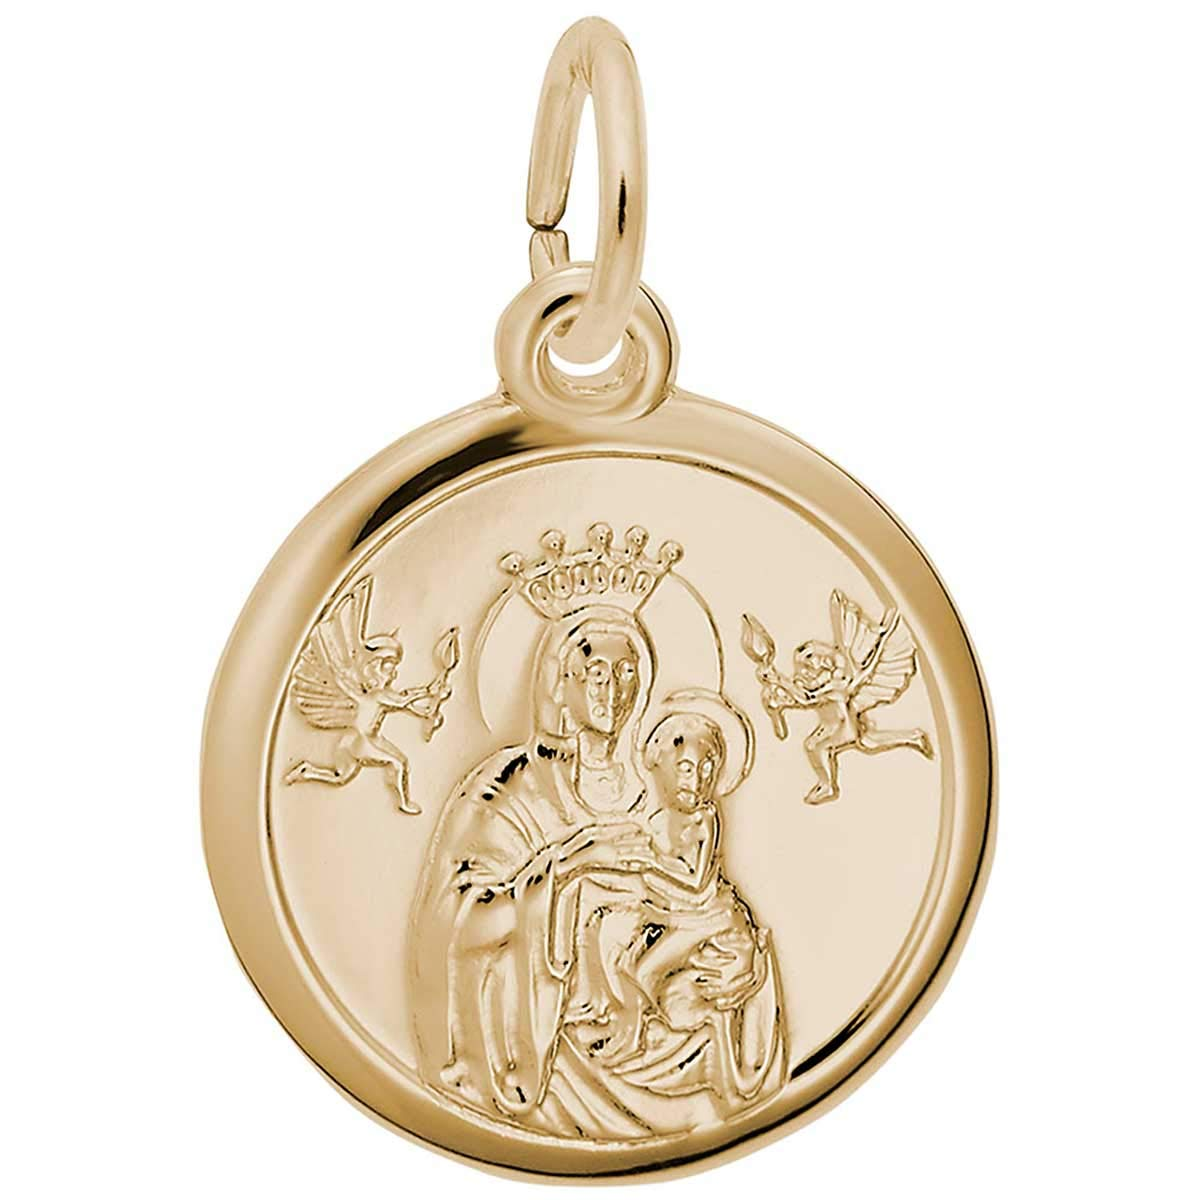 Rembrandt Charms Madonna and Child Charm, 14K Yellow Gold